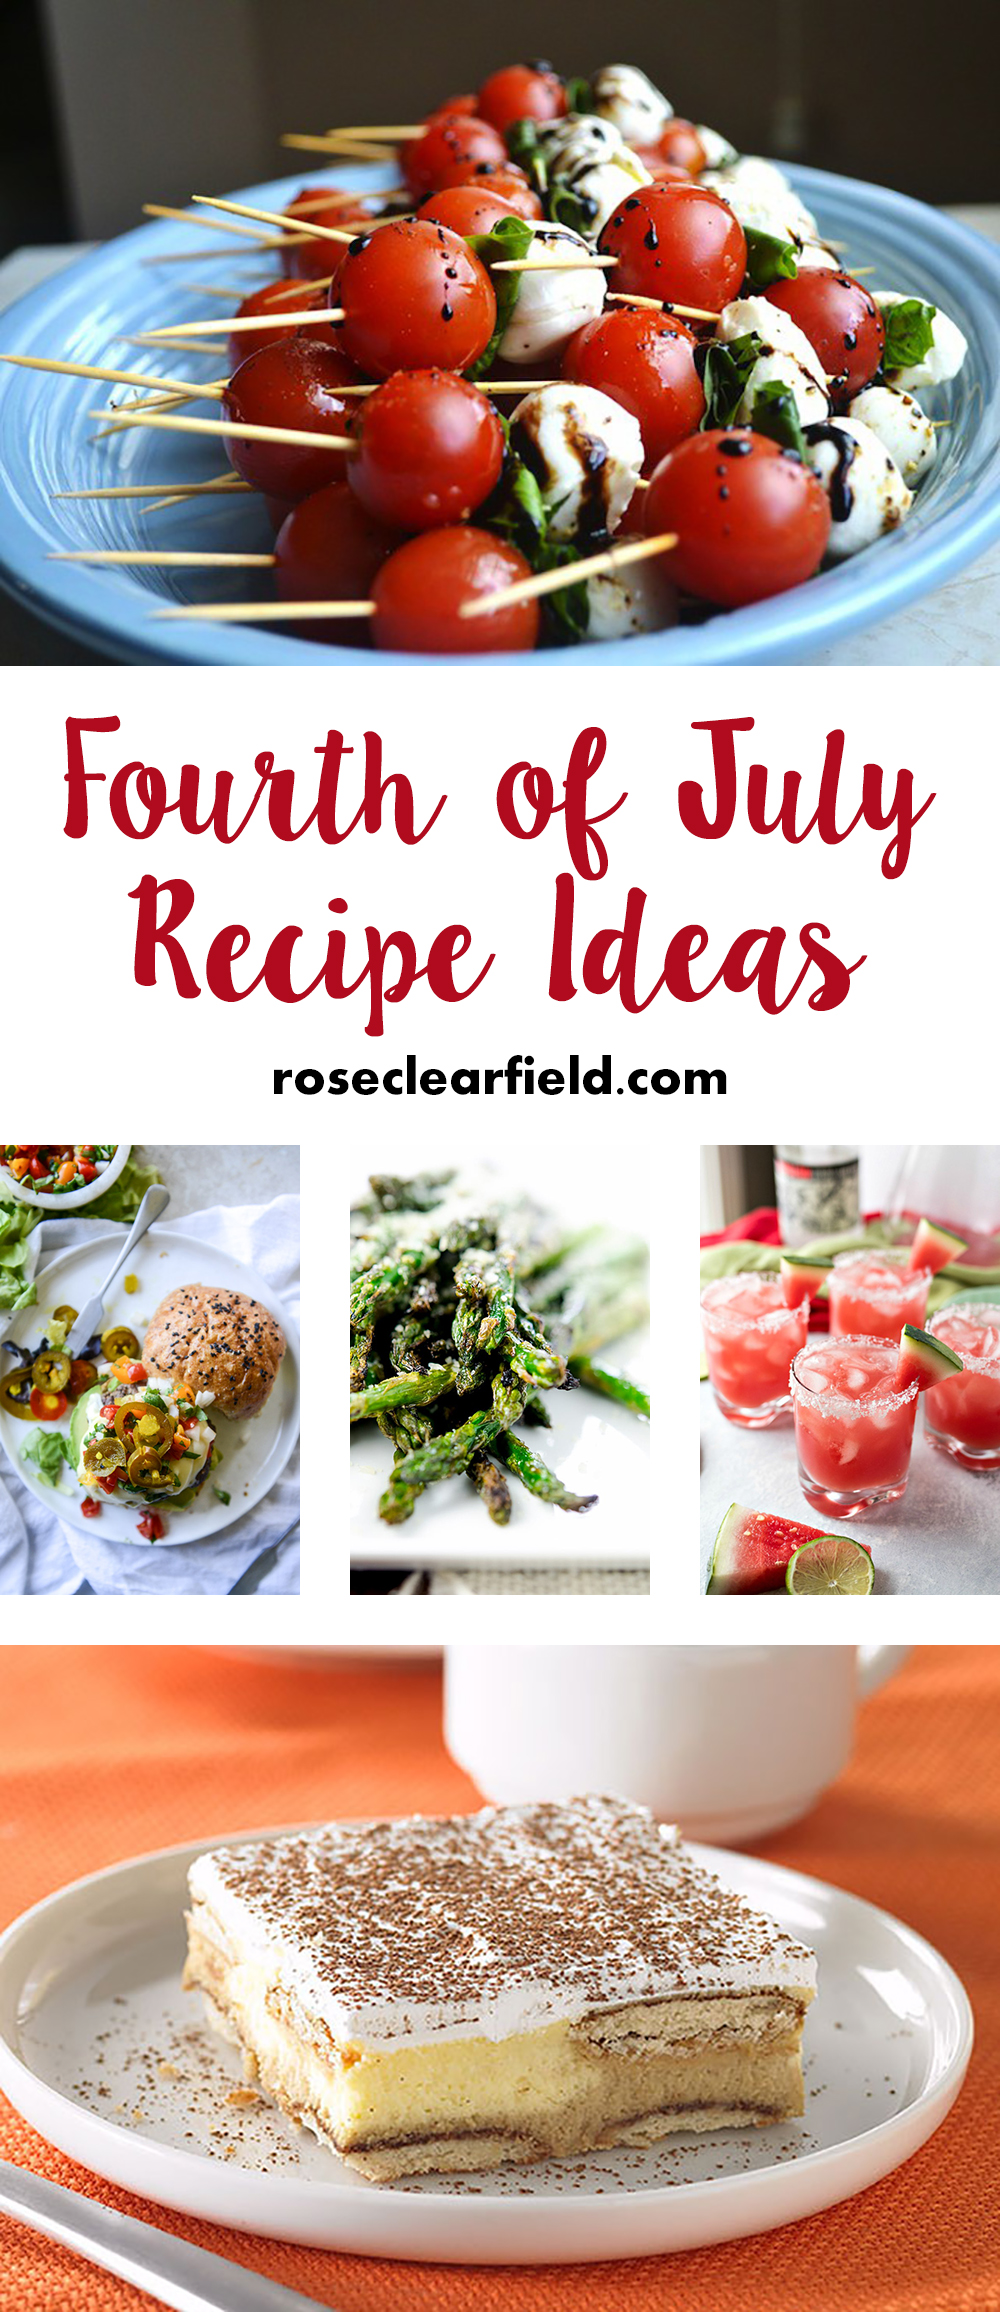 Fourth of july recipe ideas rose clearfield for July 4th food ideas